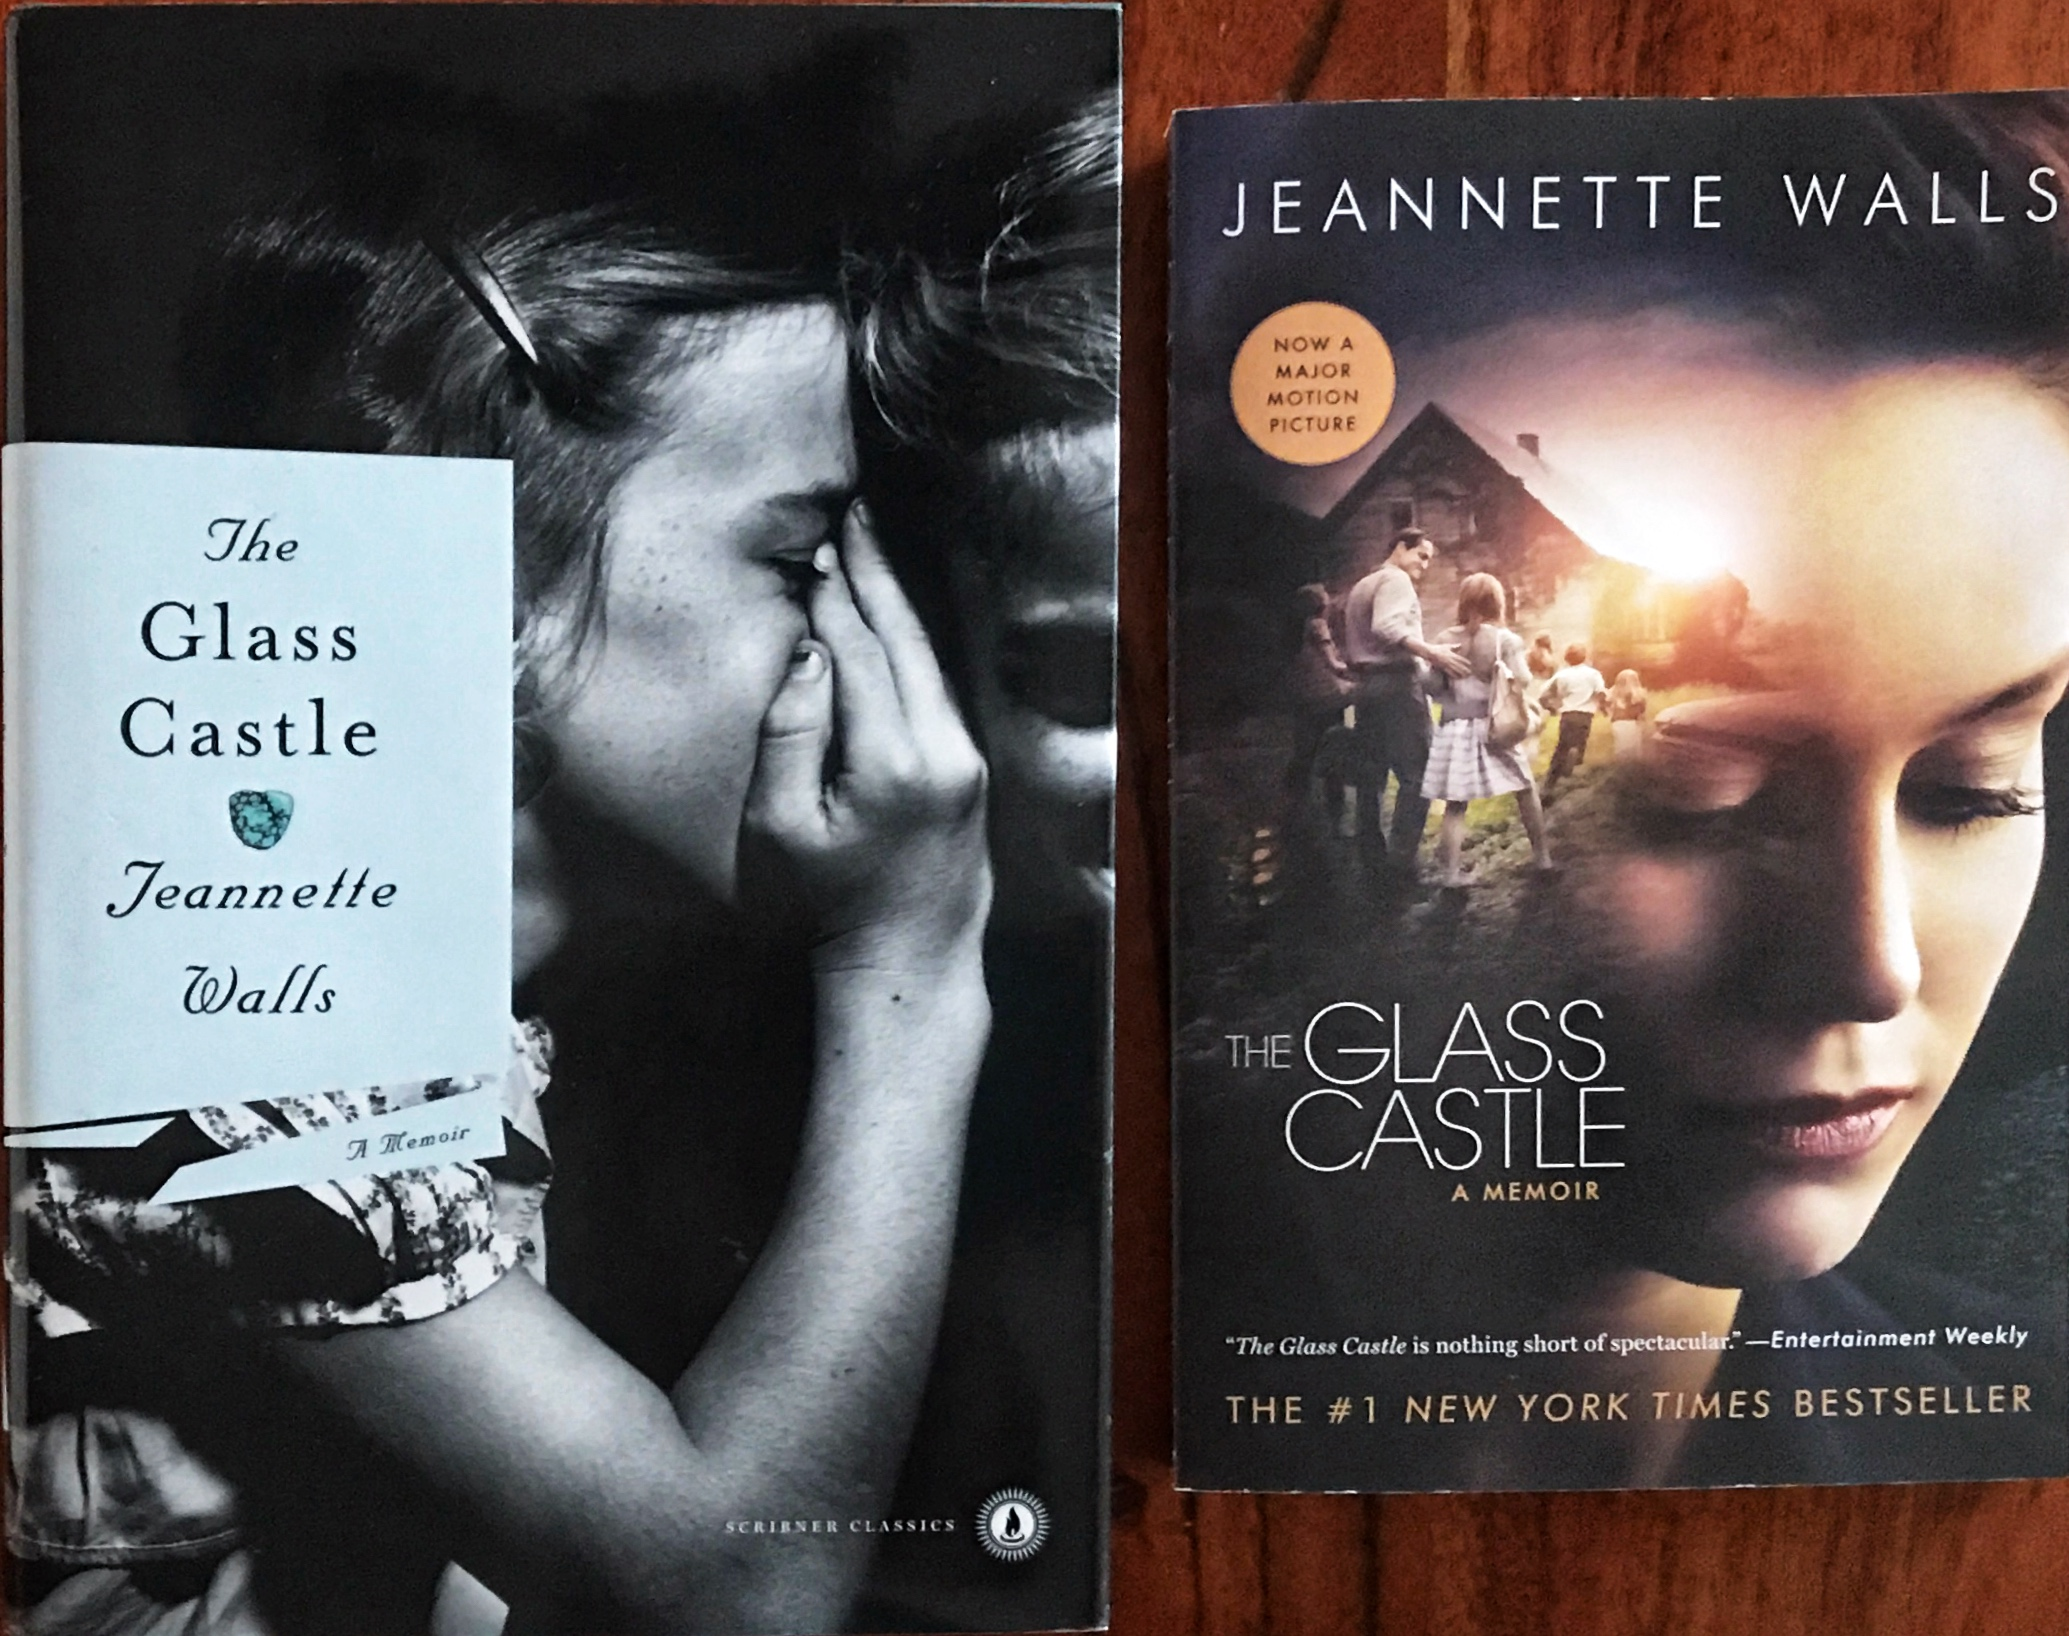 Using different covers and even updating covers with film releases or for re-releases is common practice to revive sales.